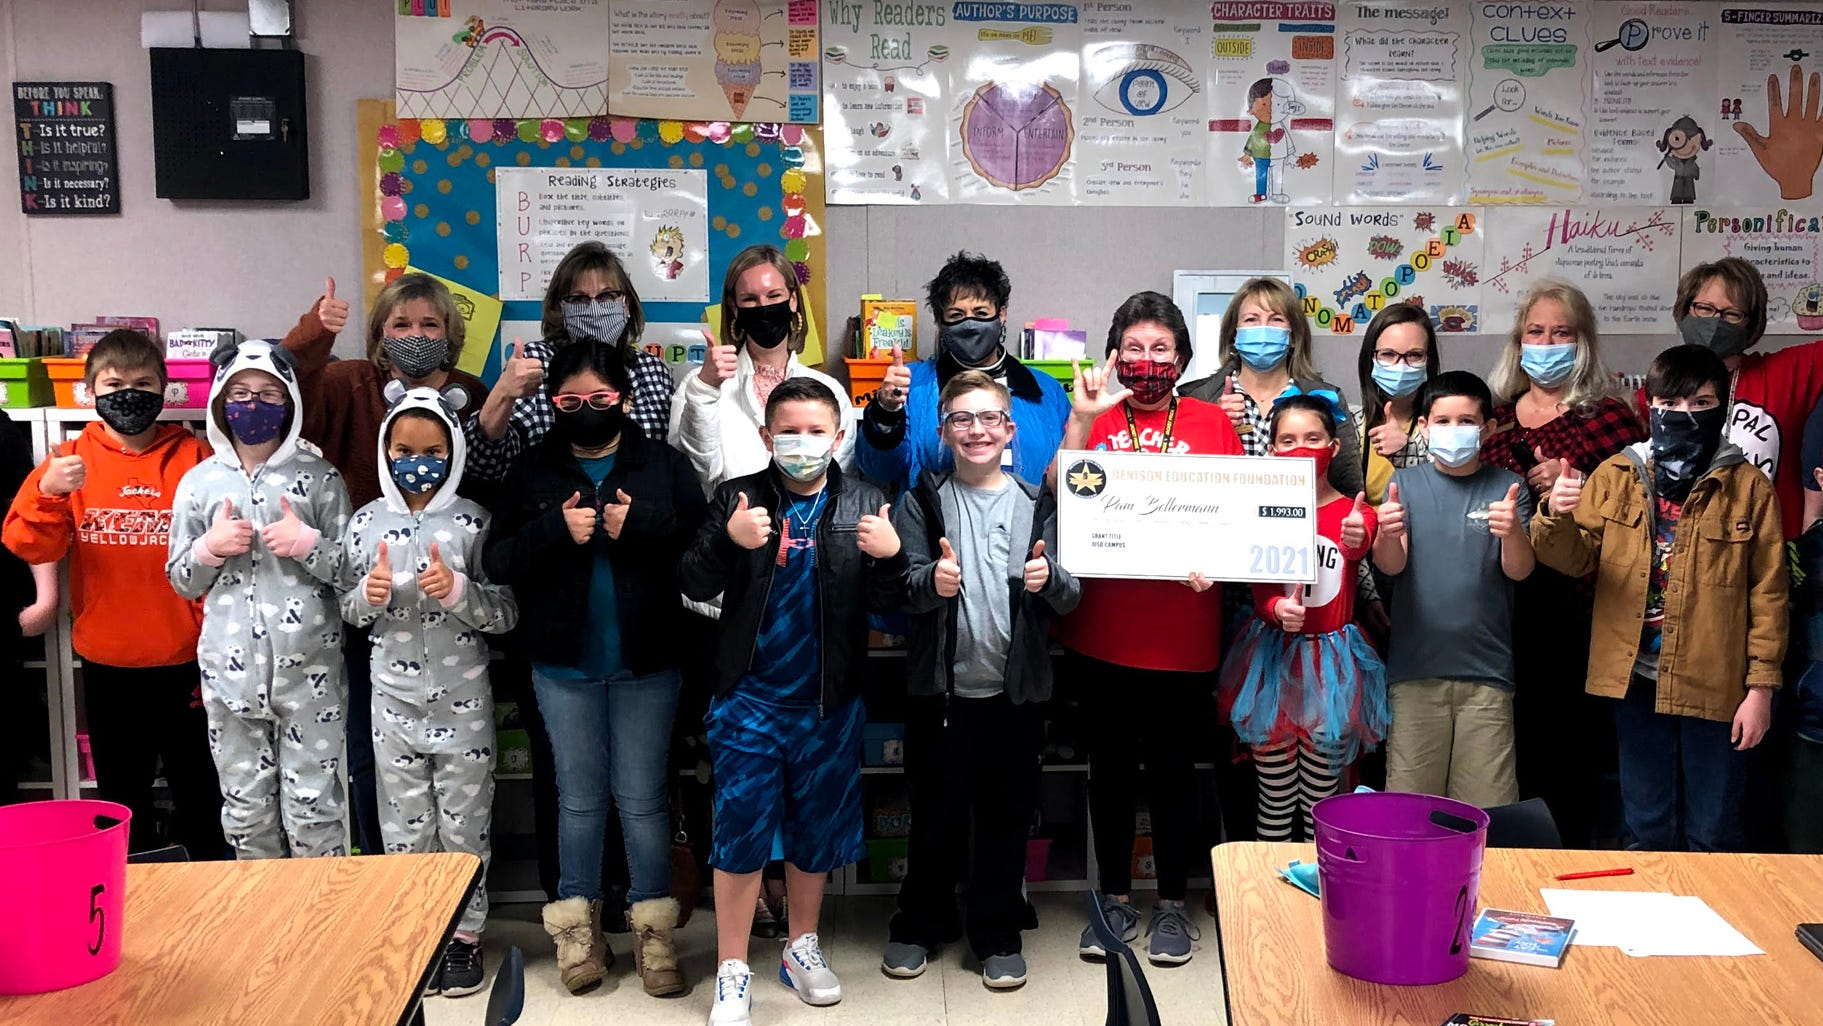 """Pam Bellermann, reading specialist for grades K-4 at Hyde Park Elementary, received a generous grant from the Denison Education Foundation for an innovative reading program entitled """"The Gift of Reading."""" """"There is no greater honor, responsibility or joy than to give the gift of reading to children,"""" said Bellermann."""